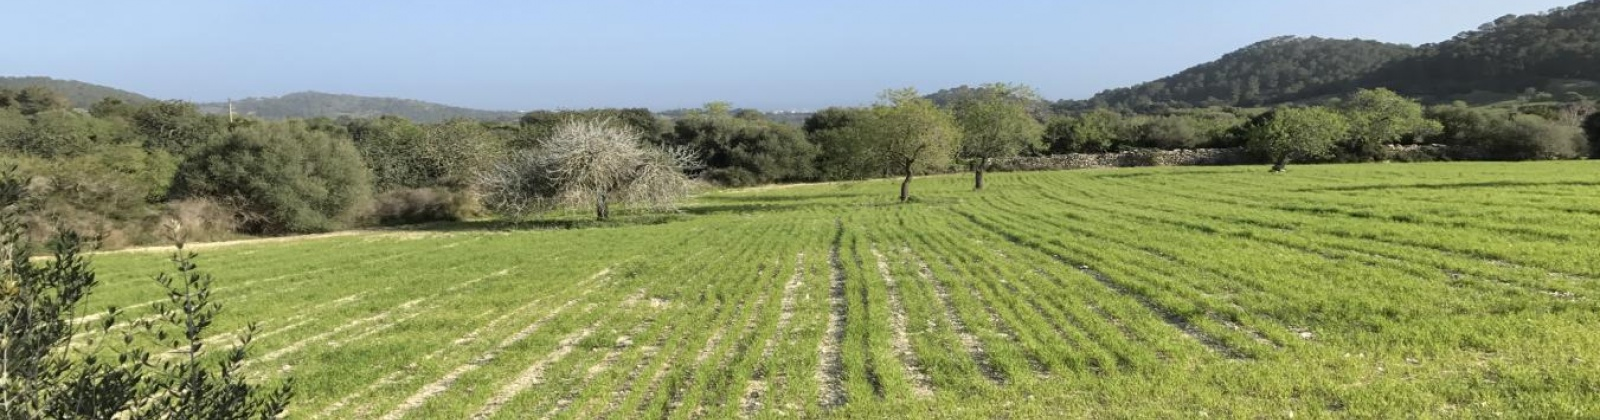 Land,For Sale,1011